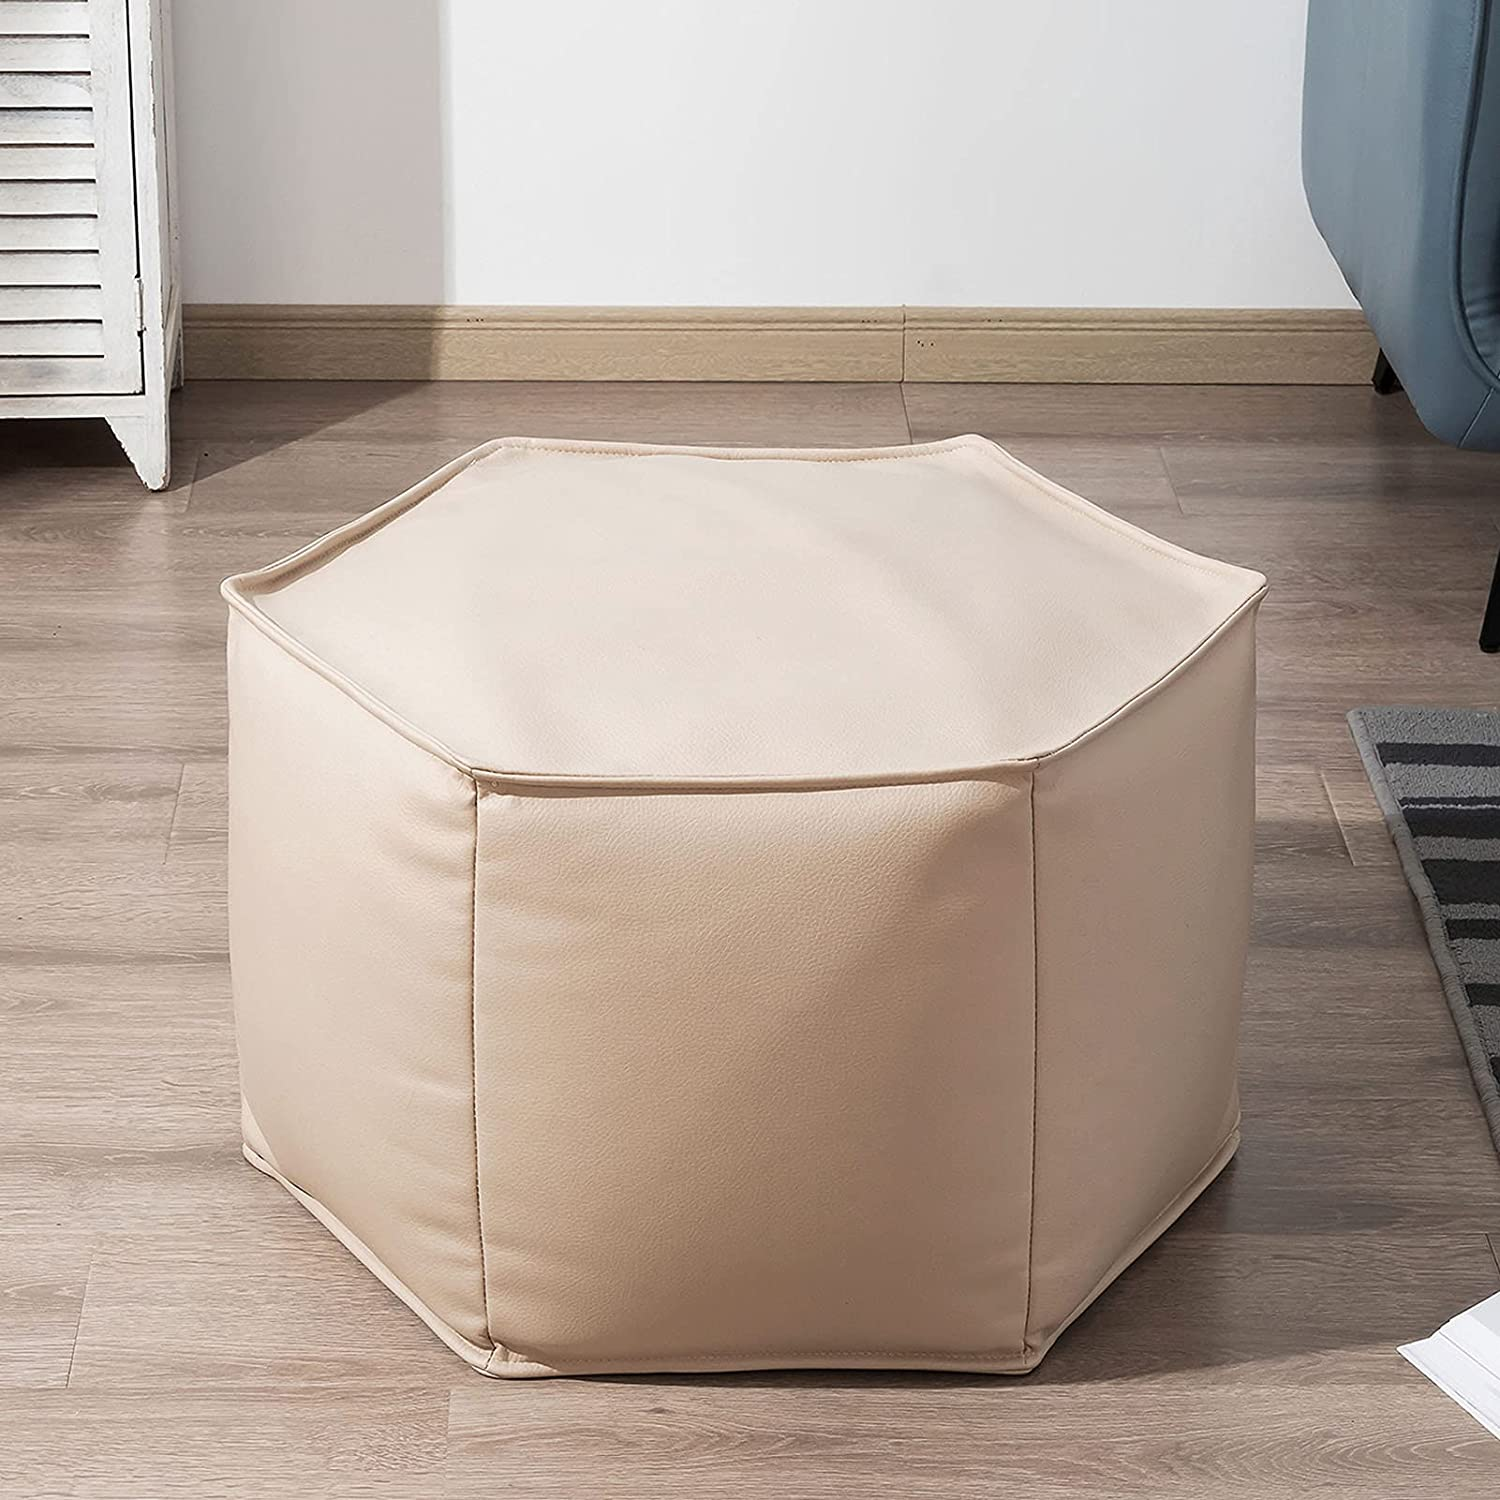 HIGOGOGO Modern Fixed price for sale Upholstered Pouf Leather Footstool Max 75% OFF wi Faux